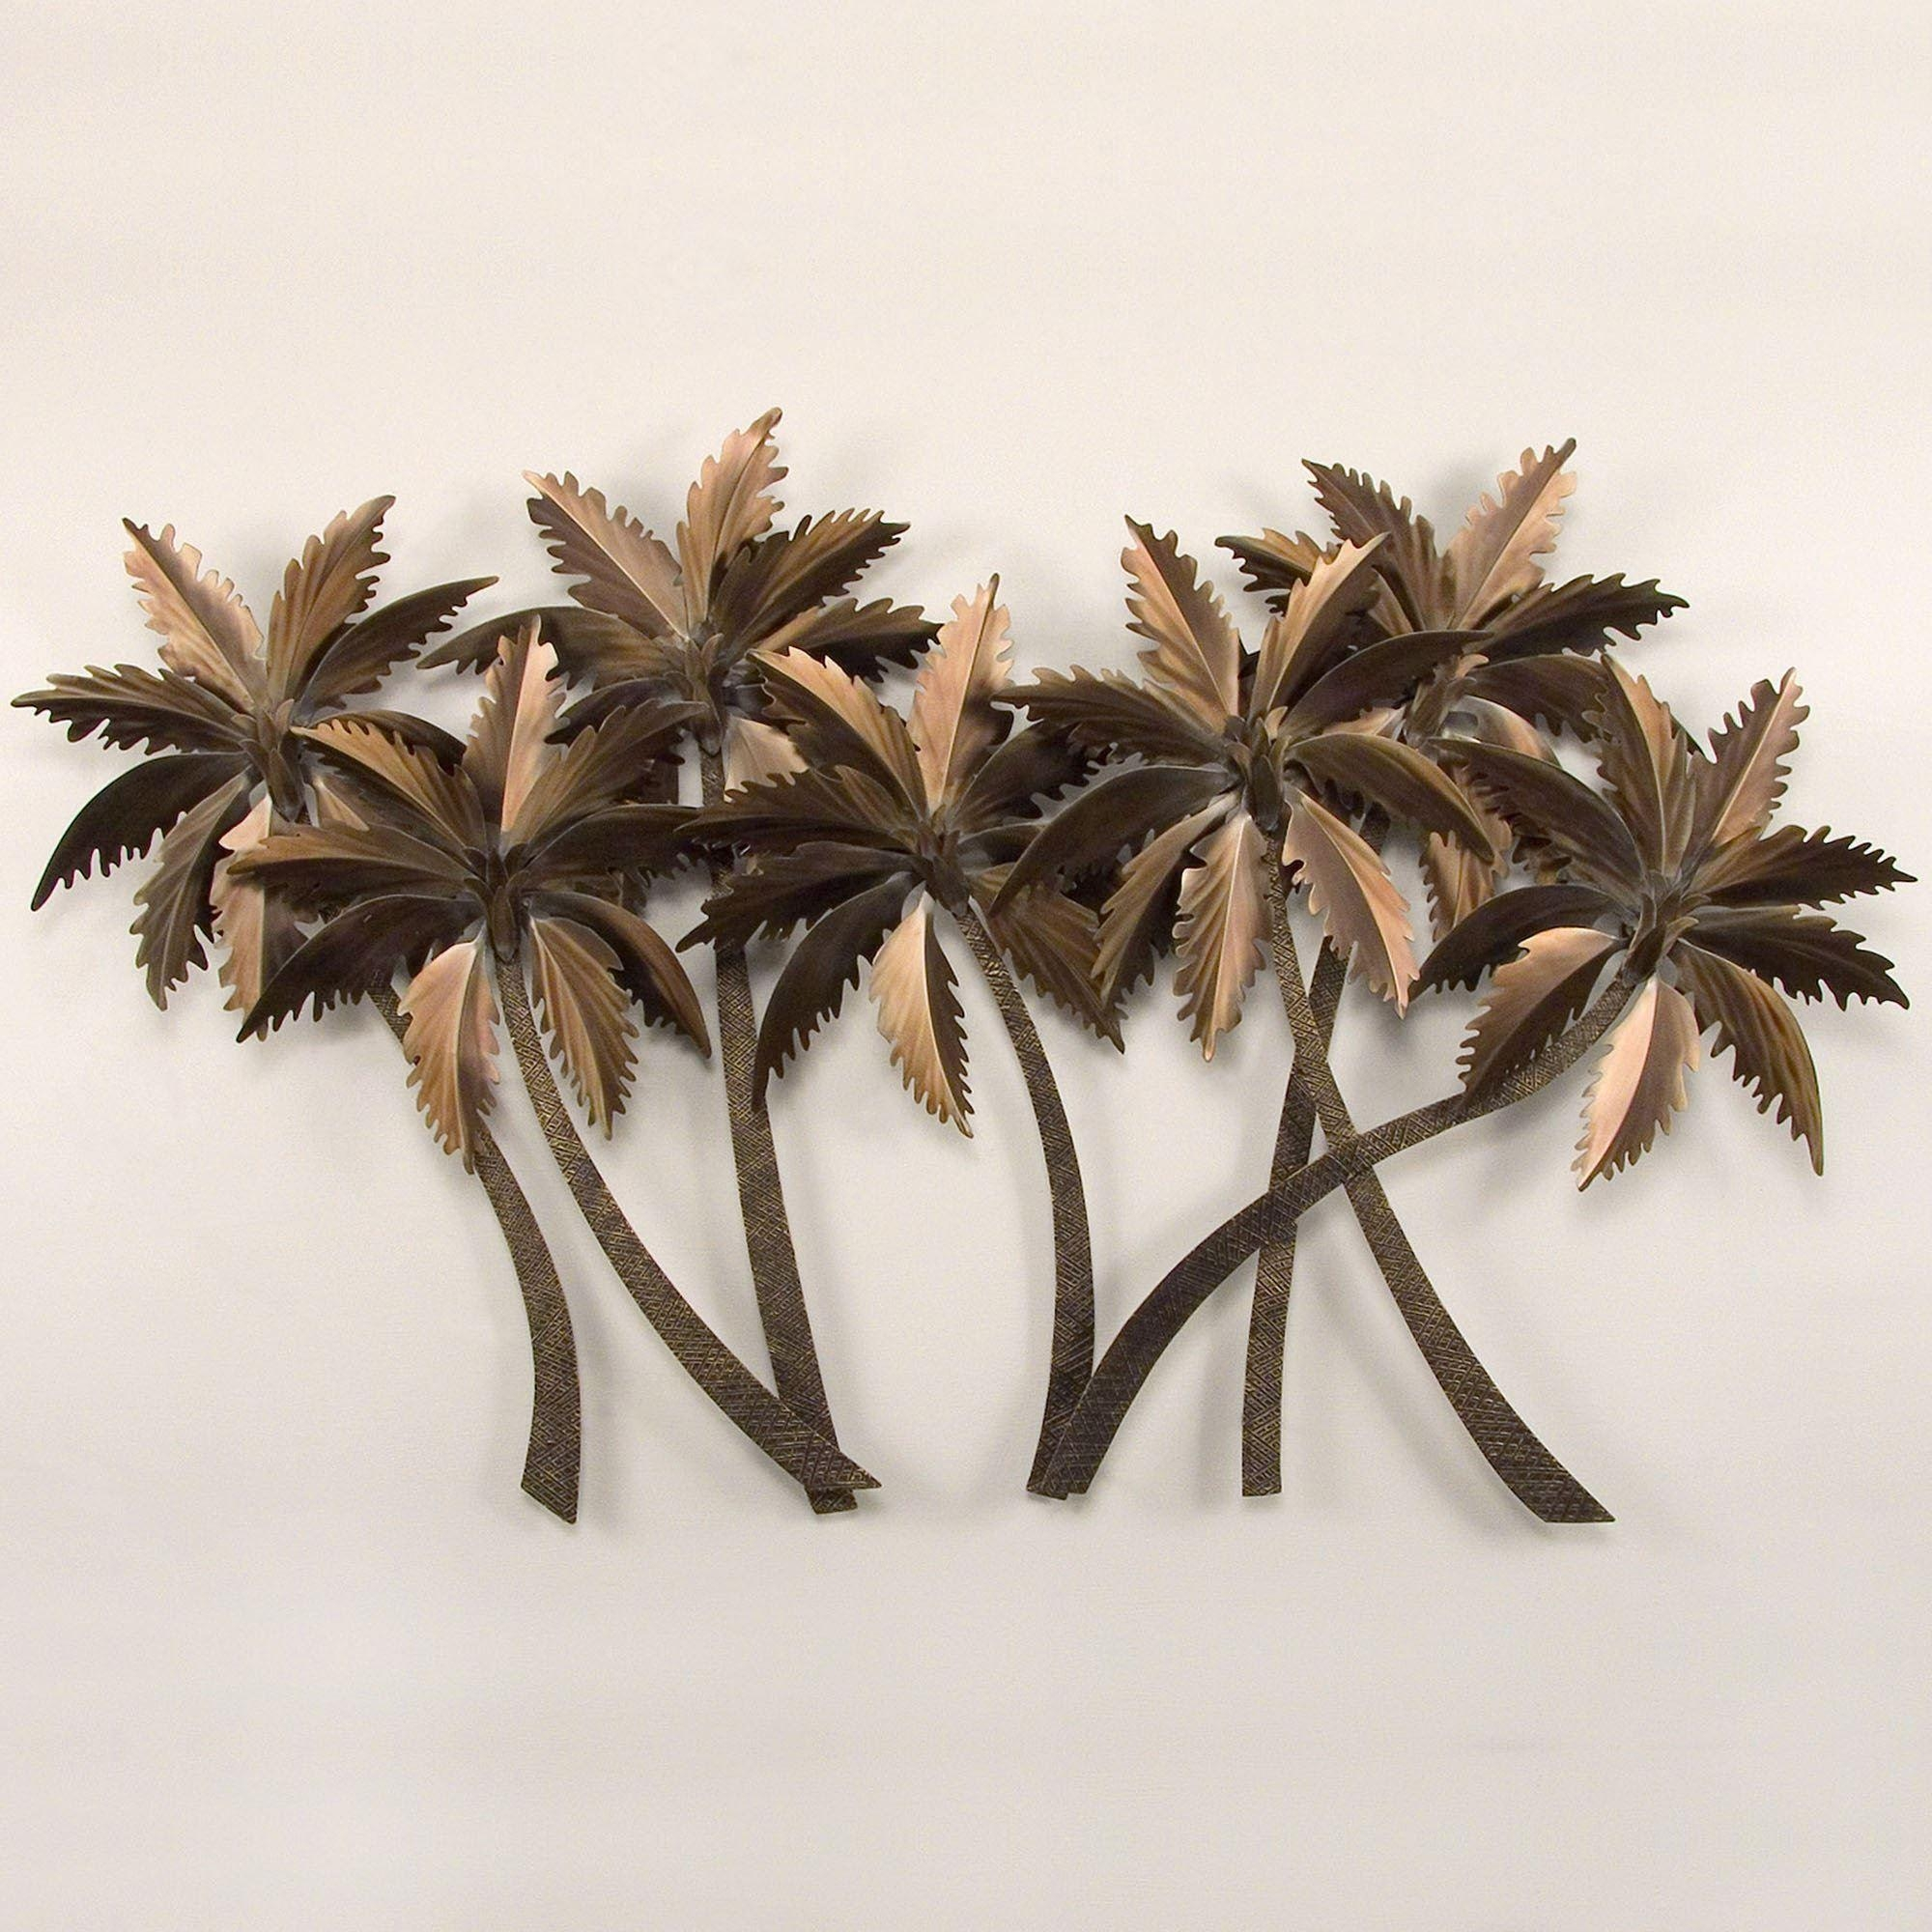 Palm Tree Metal Wall Sculpture, Caribbean Village Tropical Beach Intended For Caribbean Metal Wall Art (View 18 of 20)